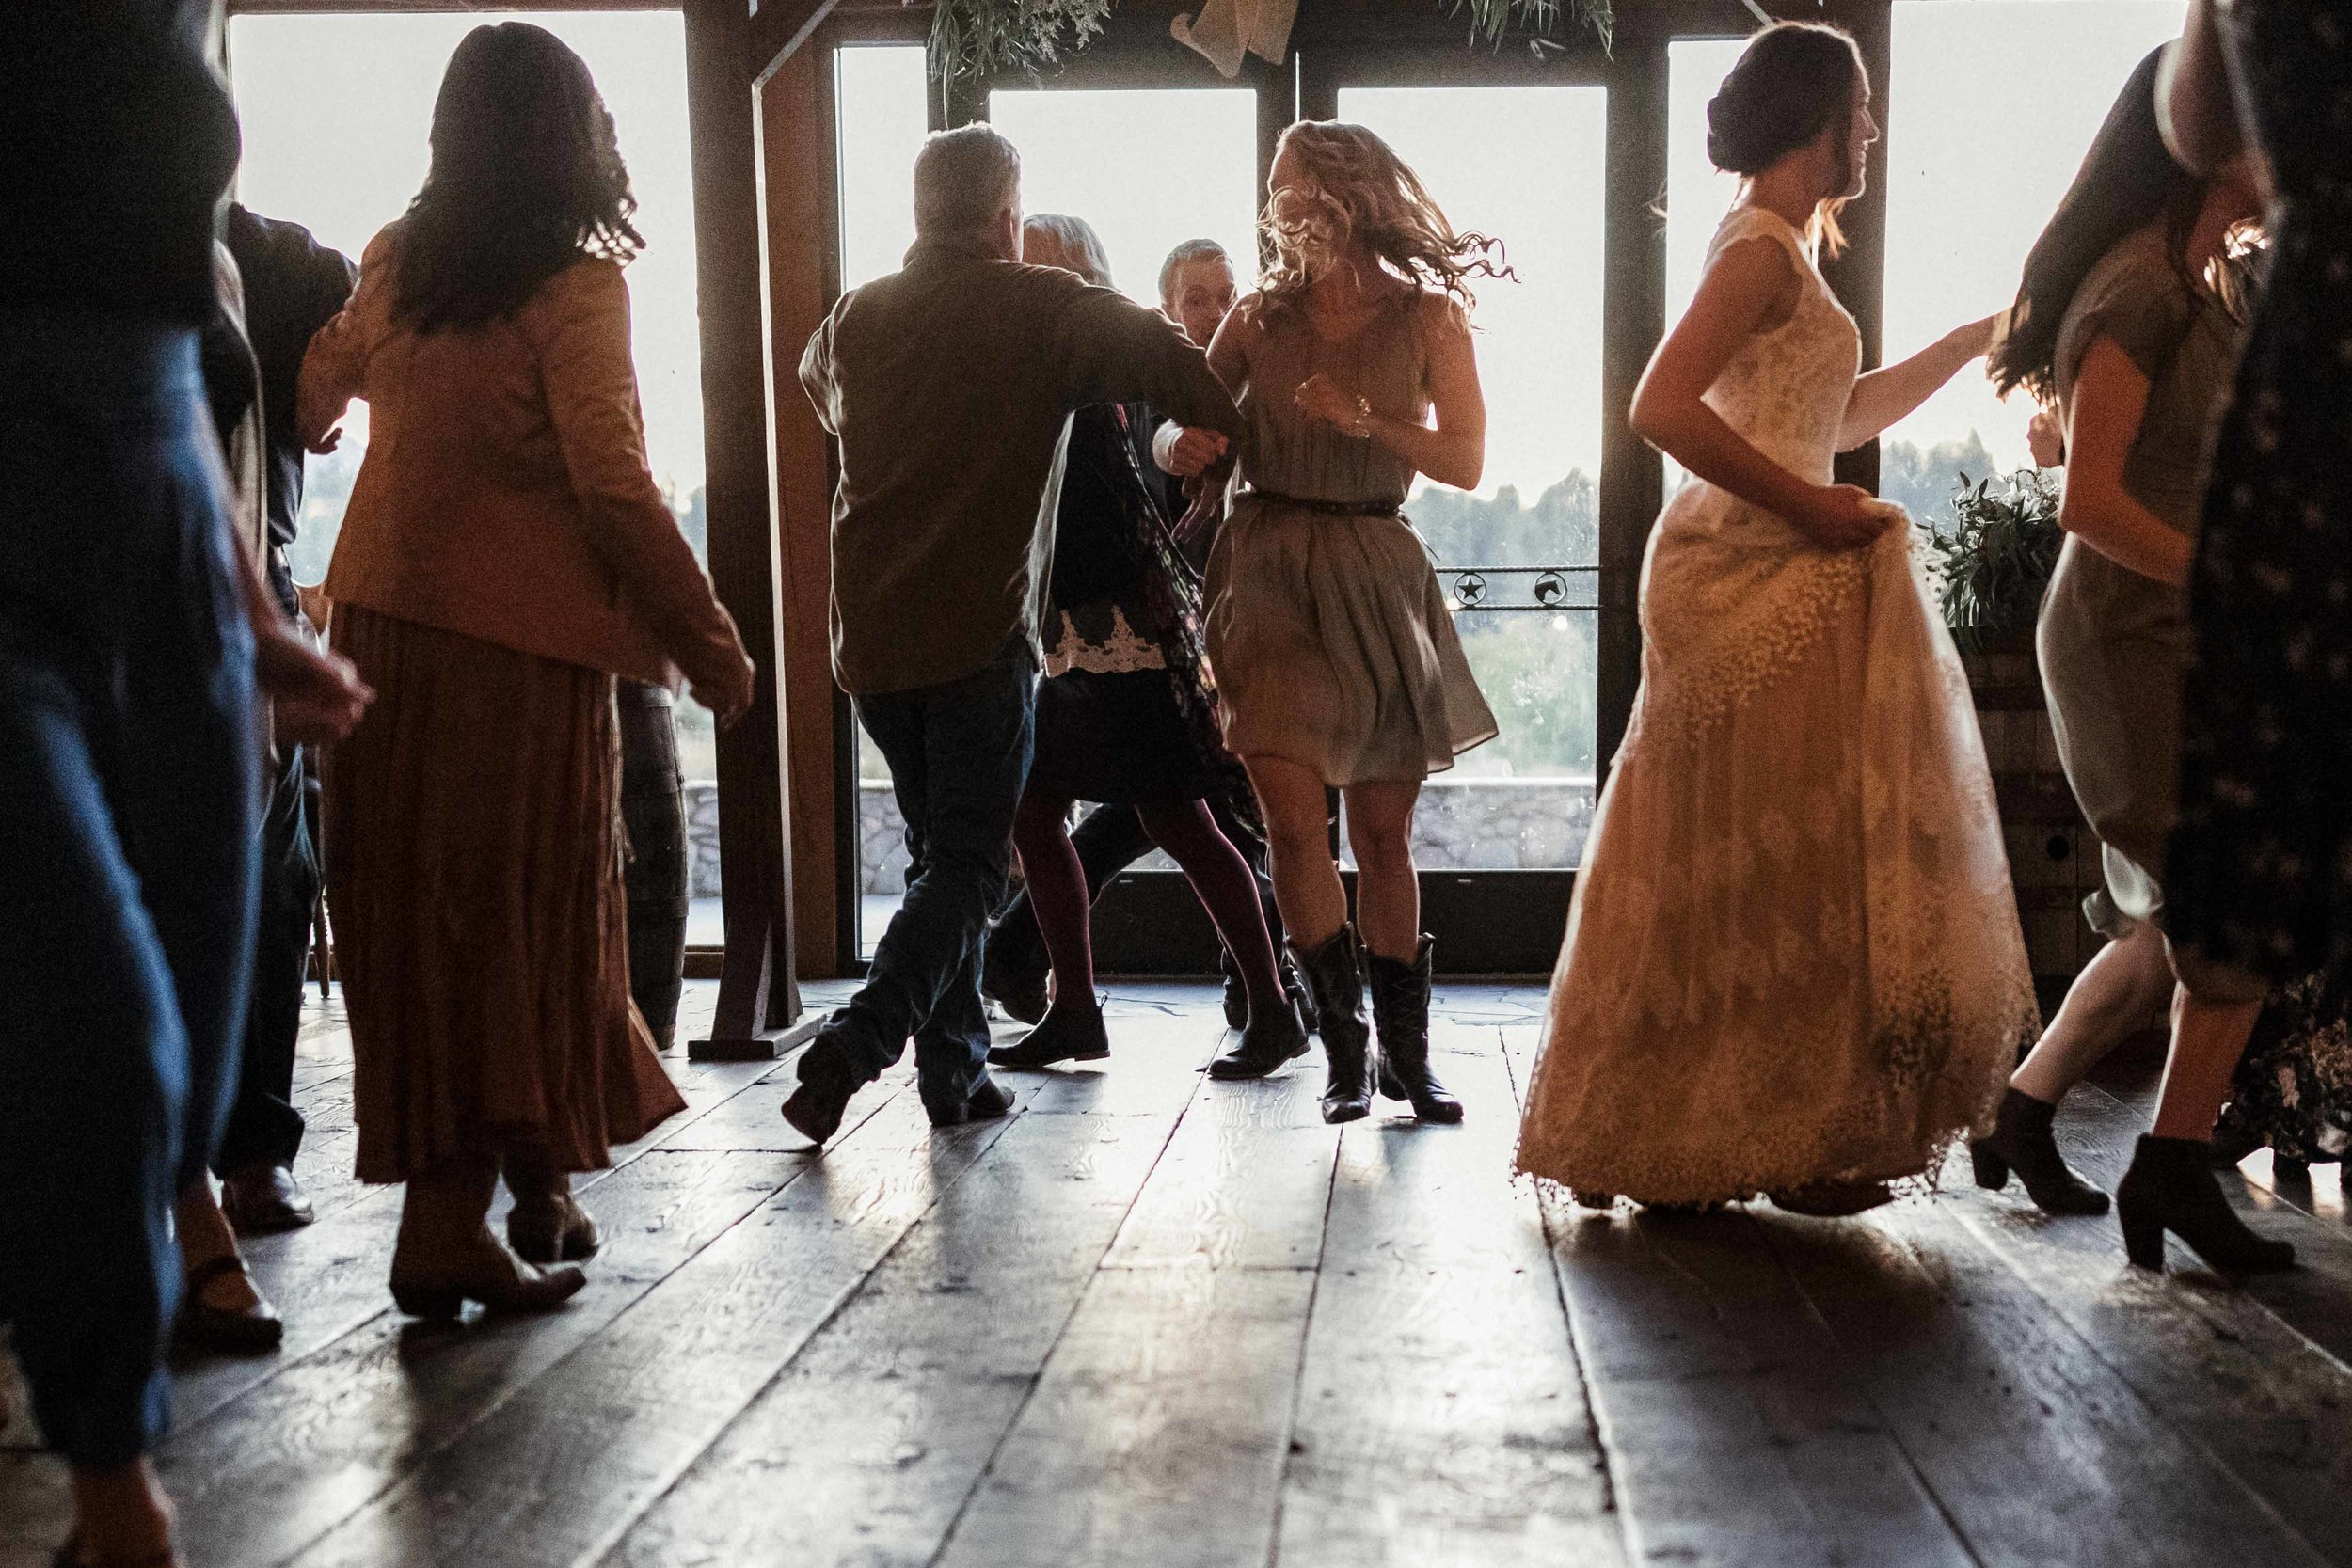 the-cattle-barn-wedding-87.jpg